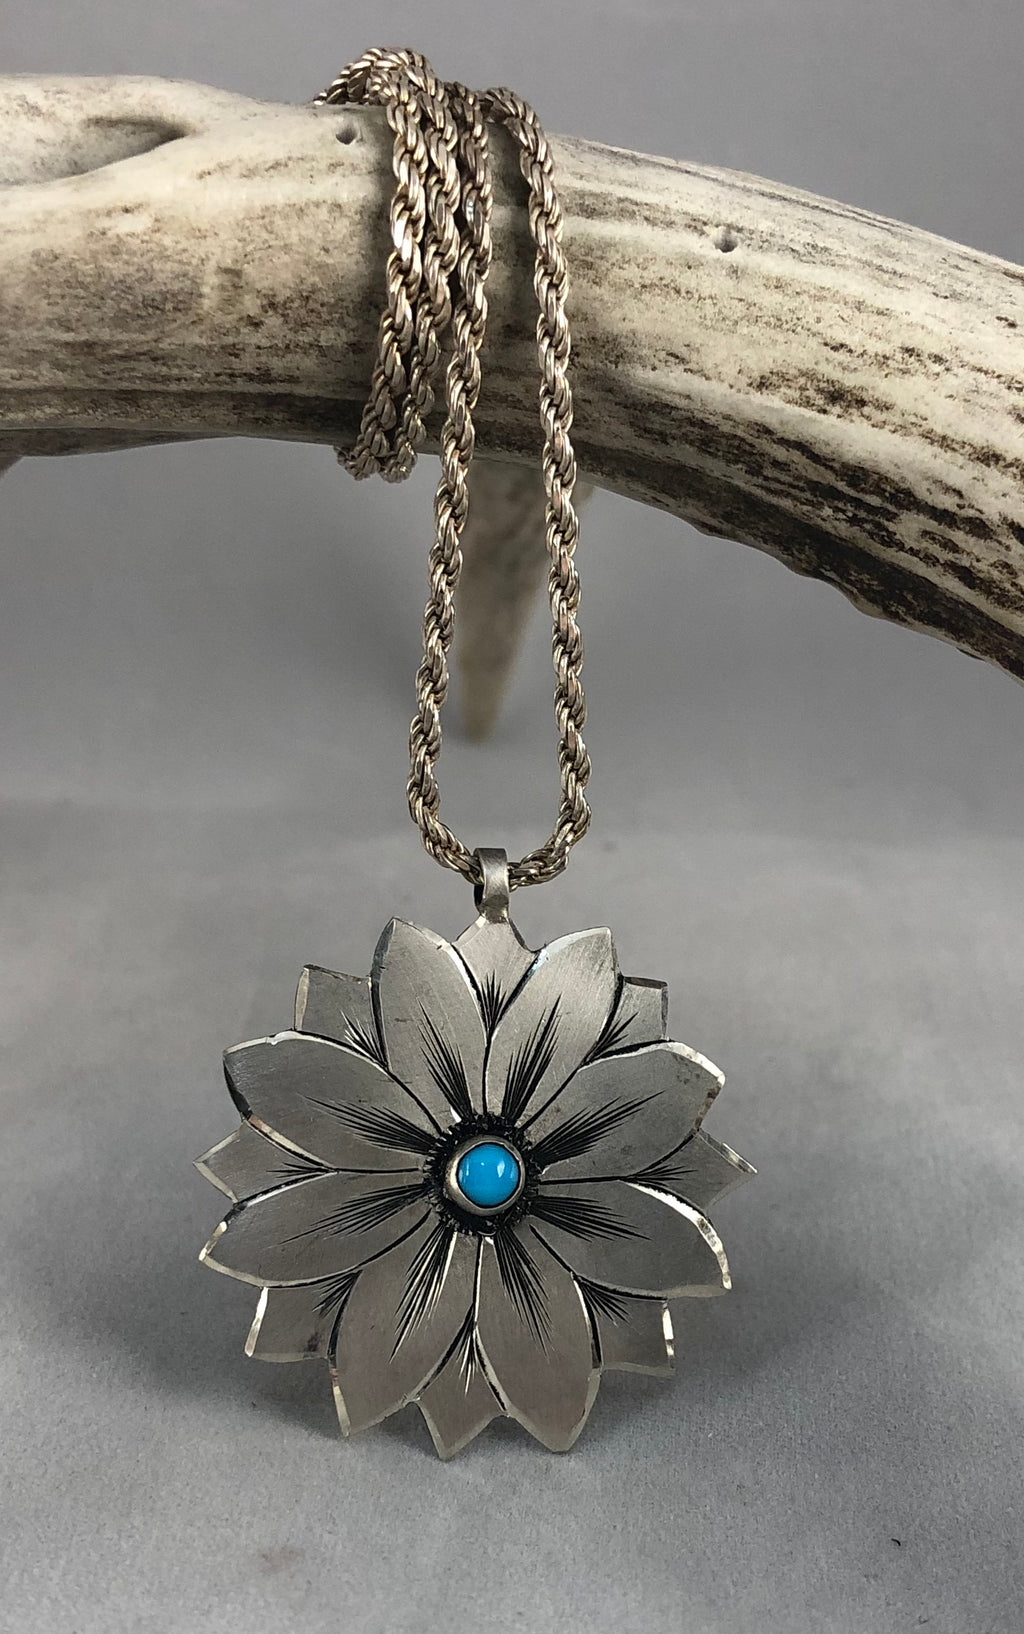 I'll Give You a Daisy a Day Pendant